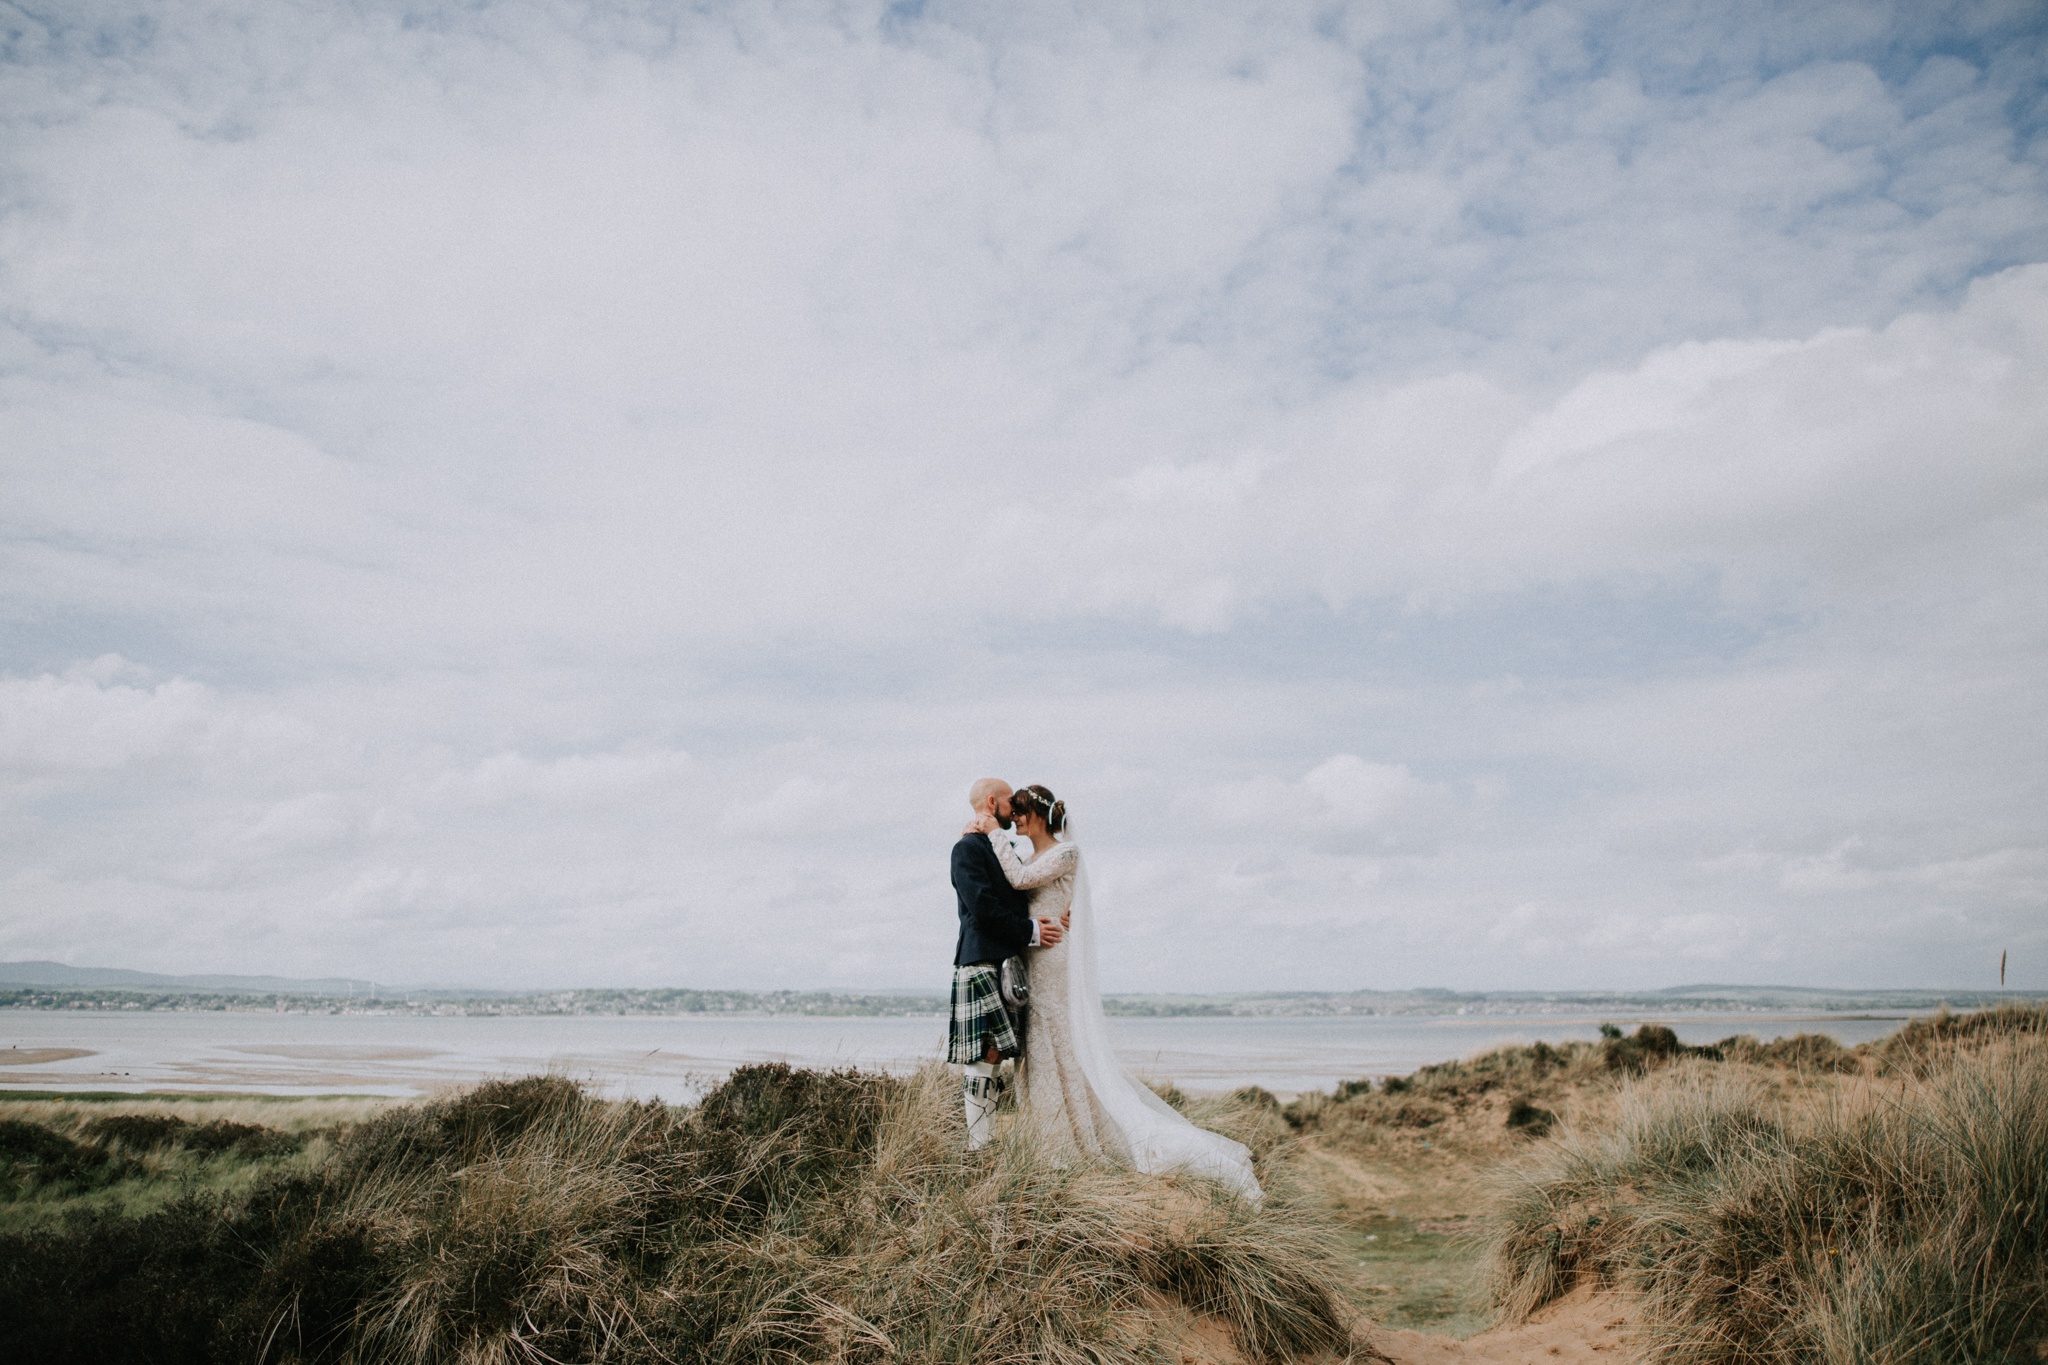 A wide angle shot of the couple on the beach